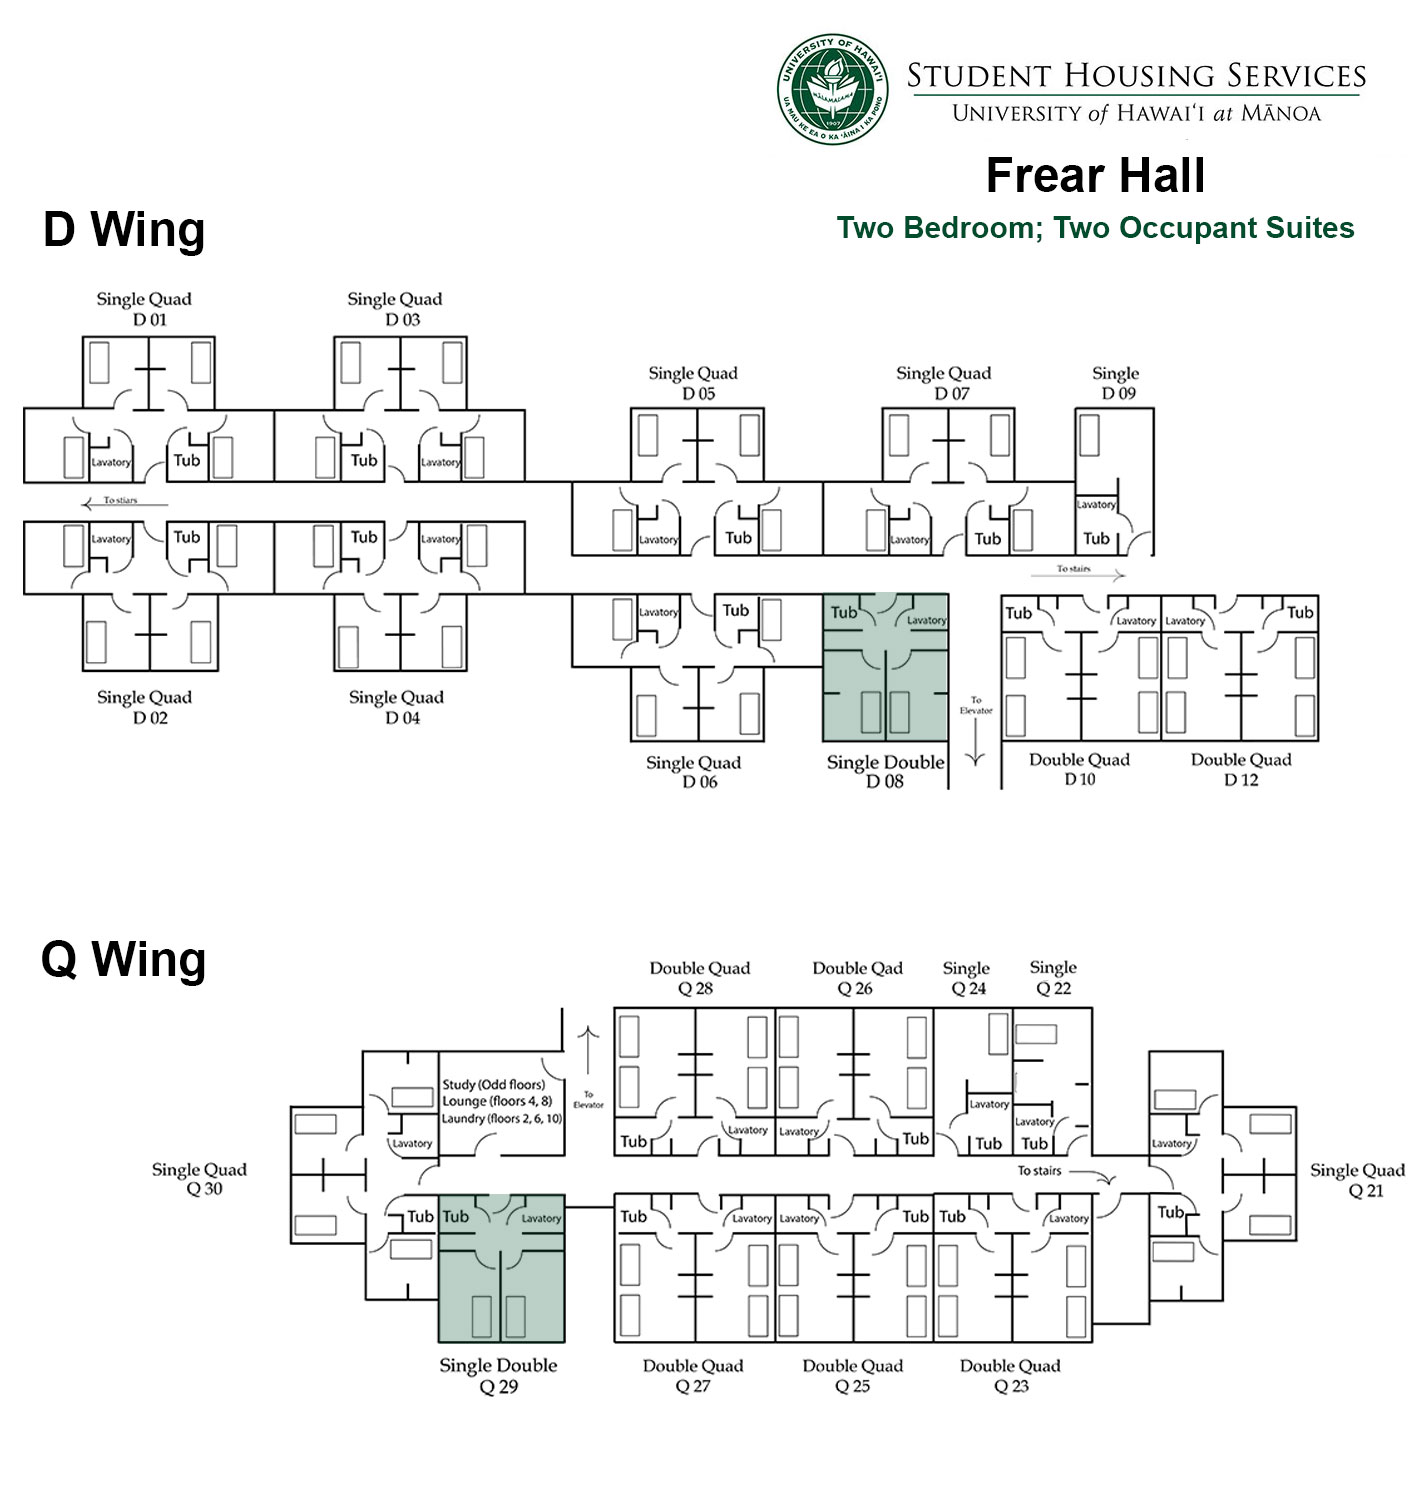 Frear Hall Two Bed; Two Occupant Floor Plan